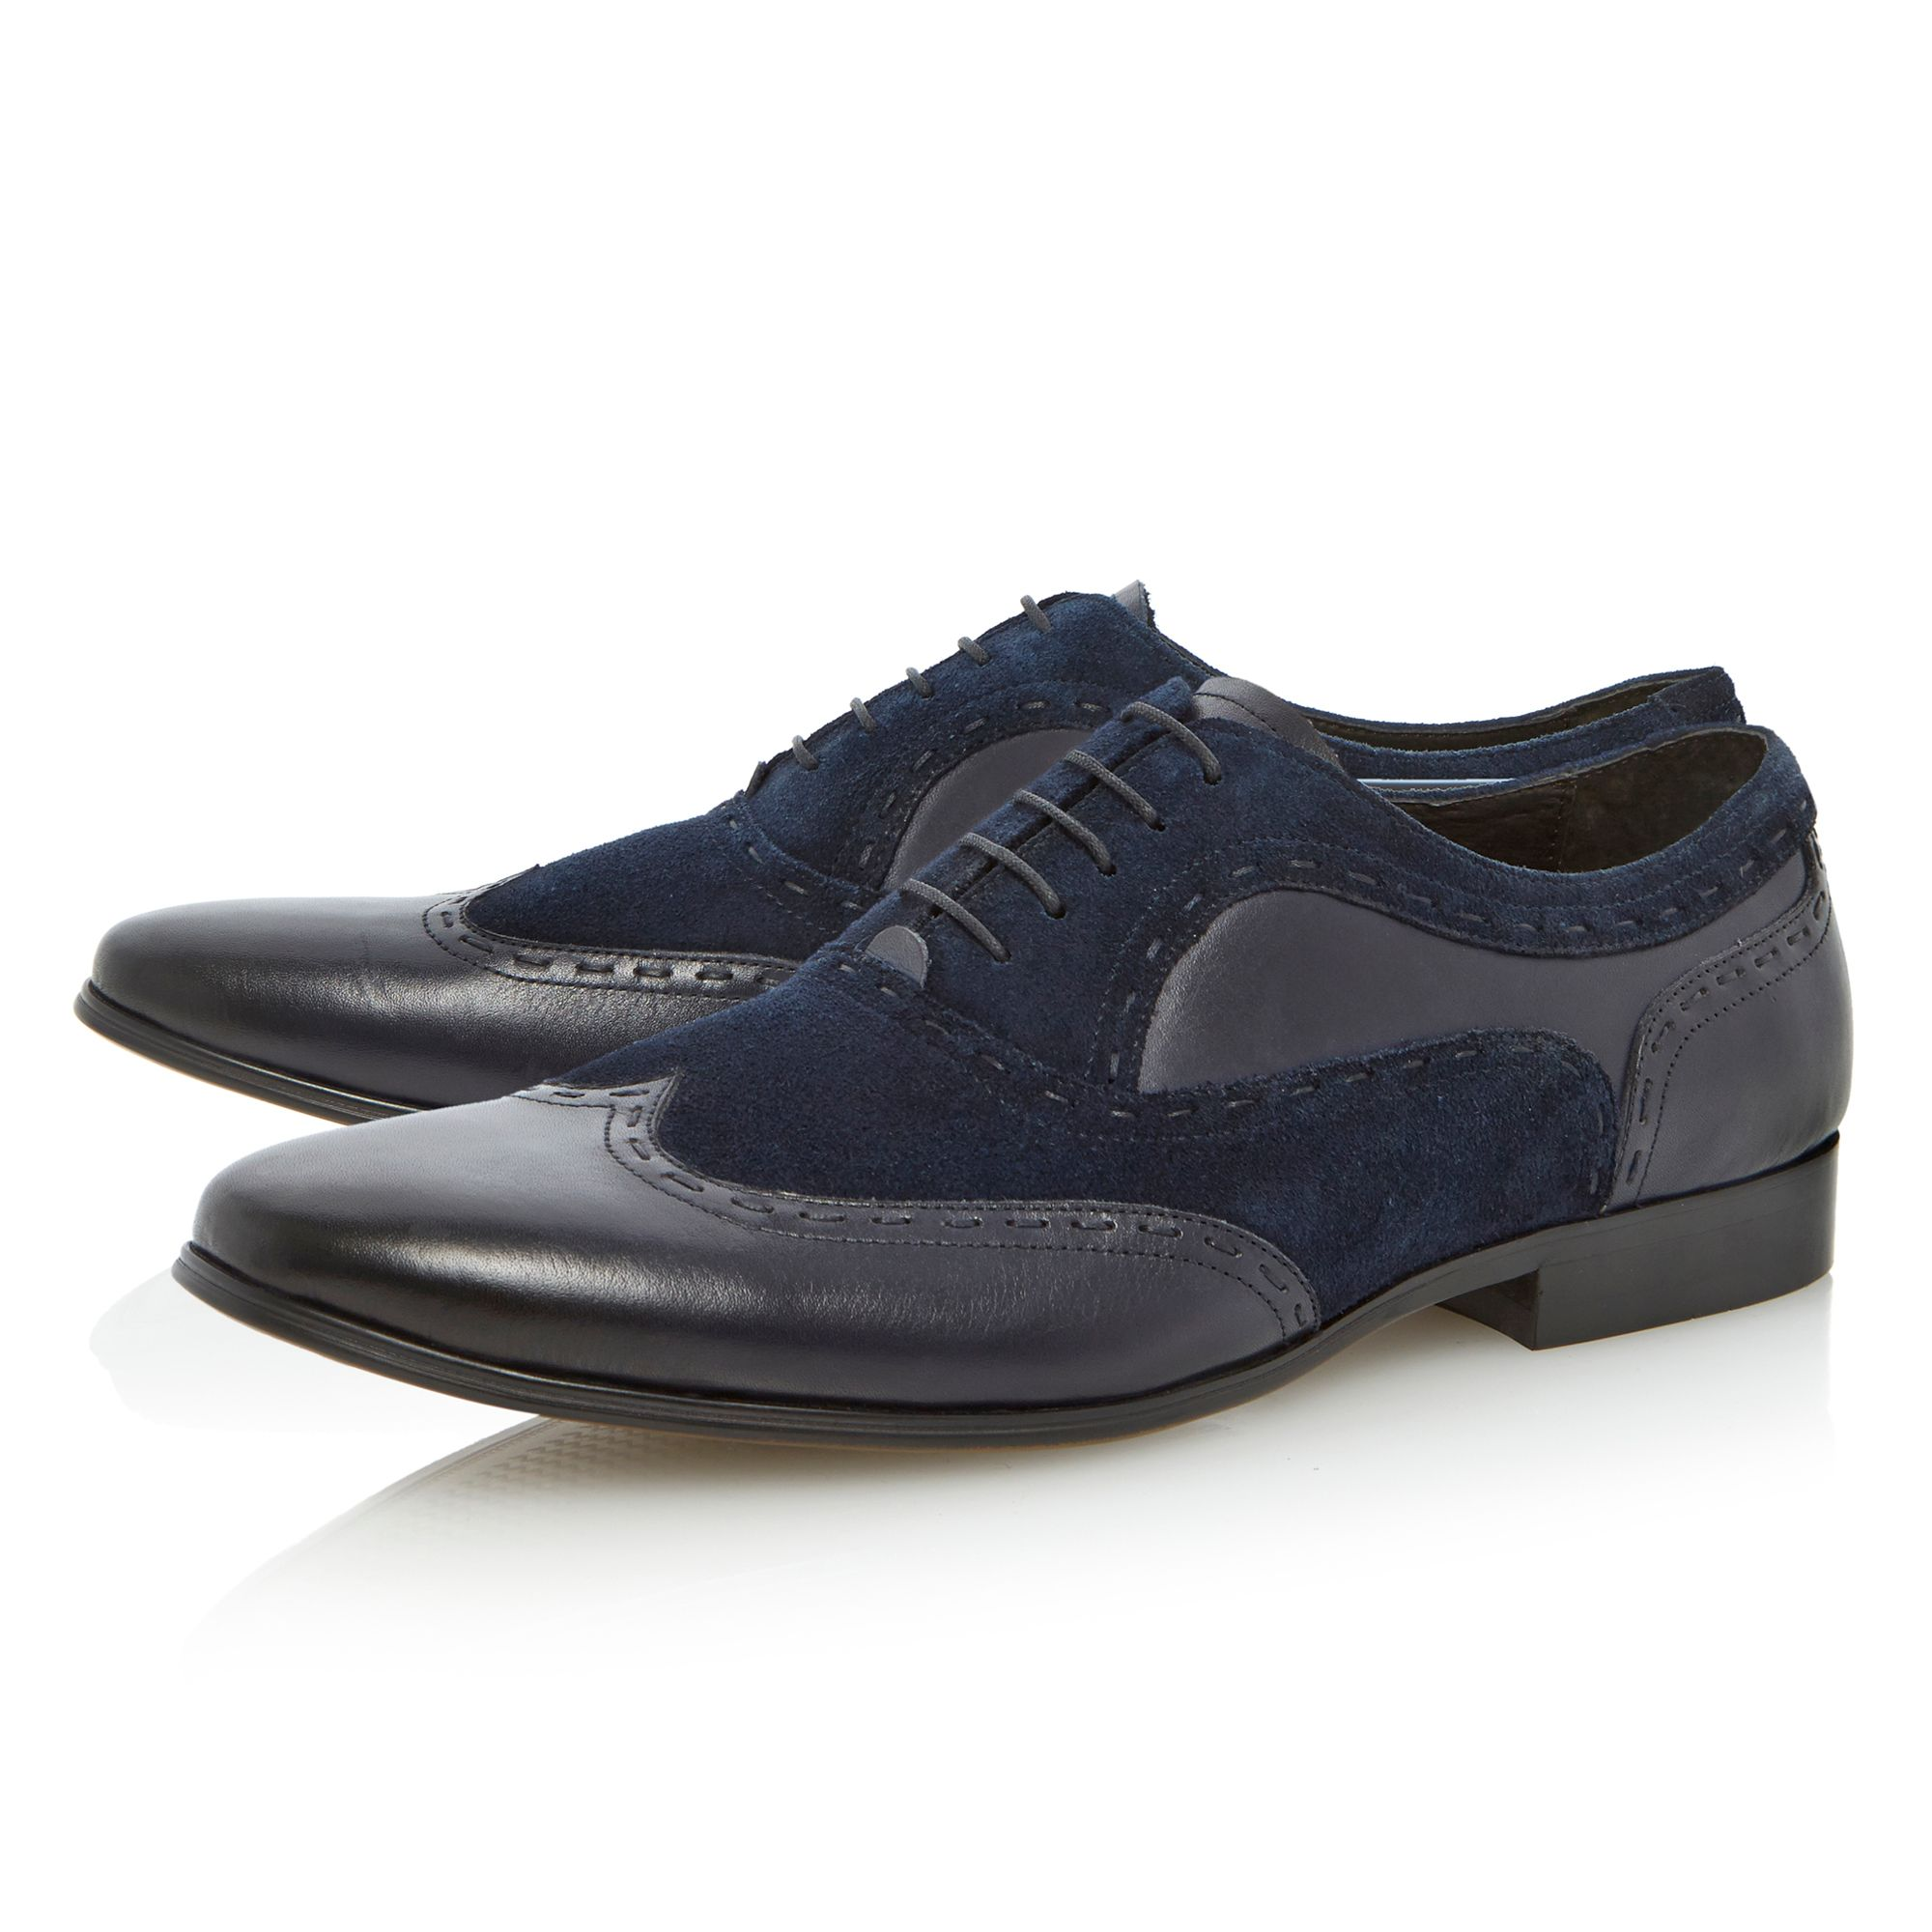 Ambrose mixed suede and leather brogues